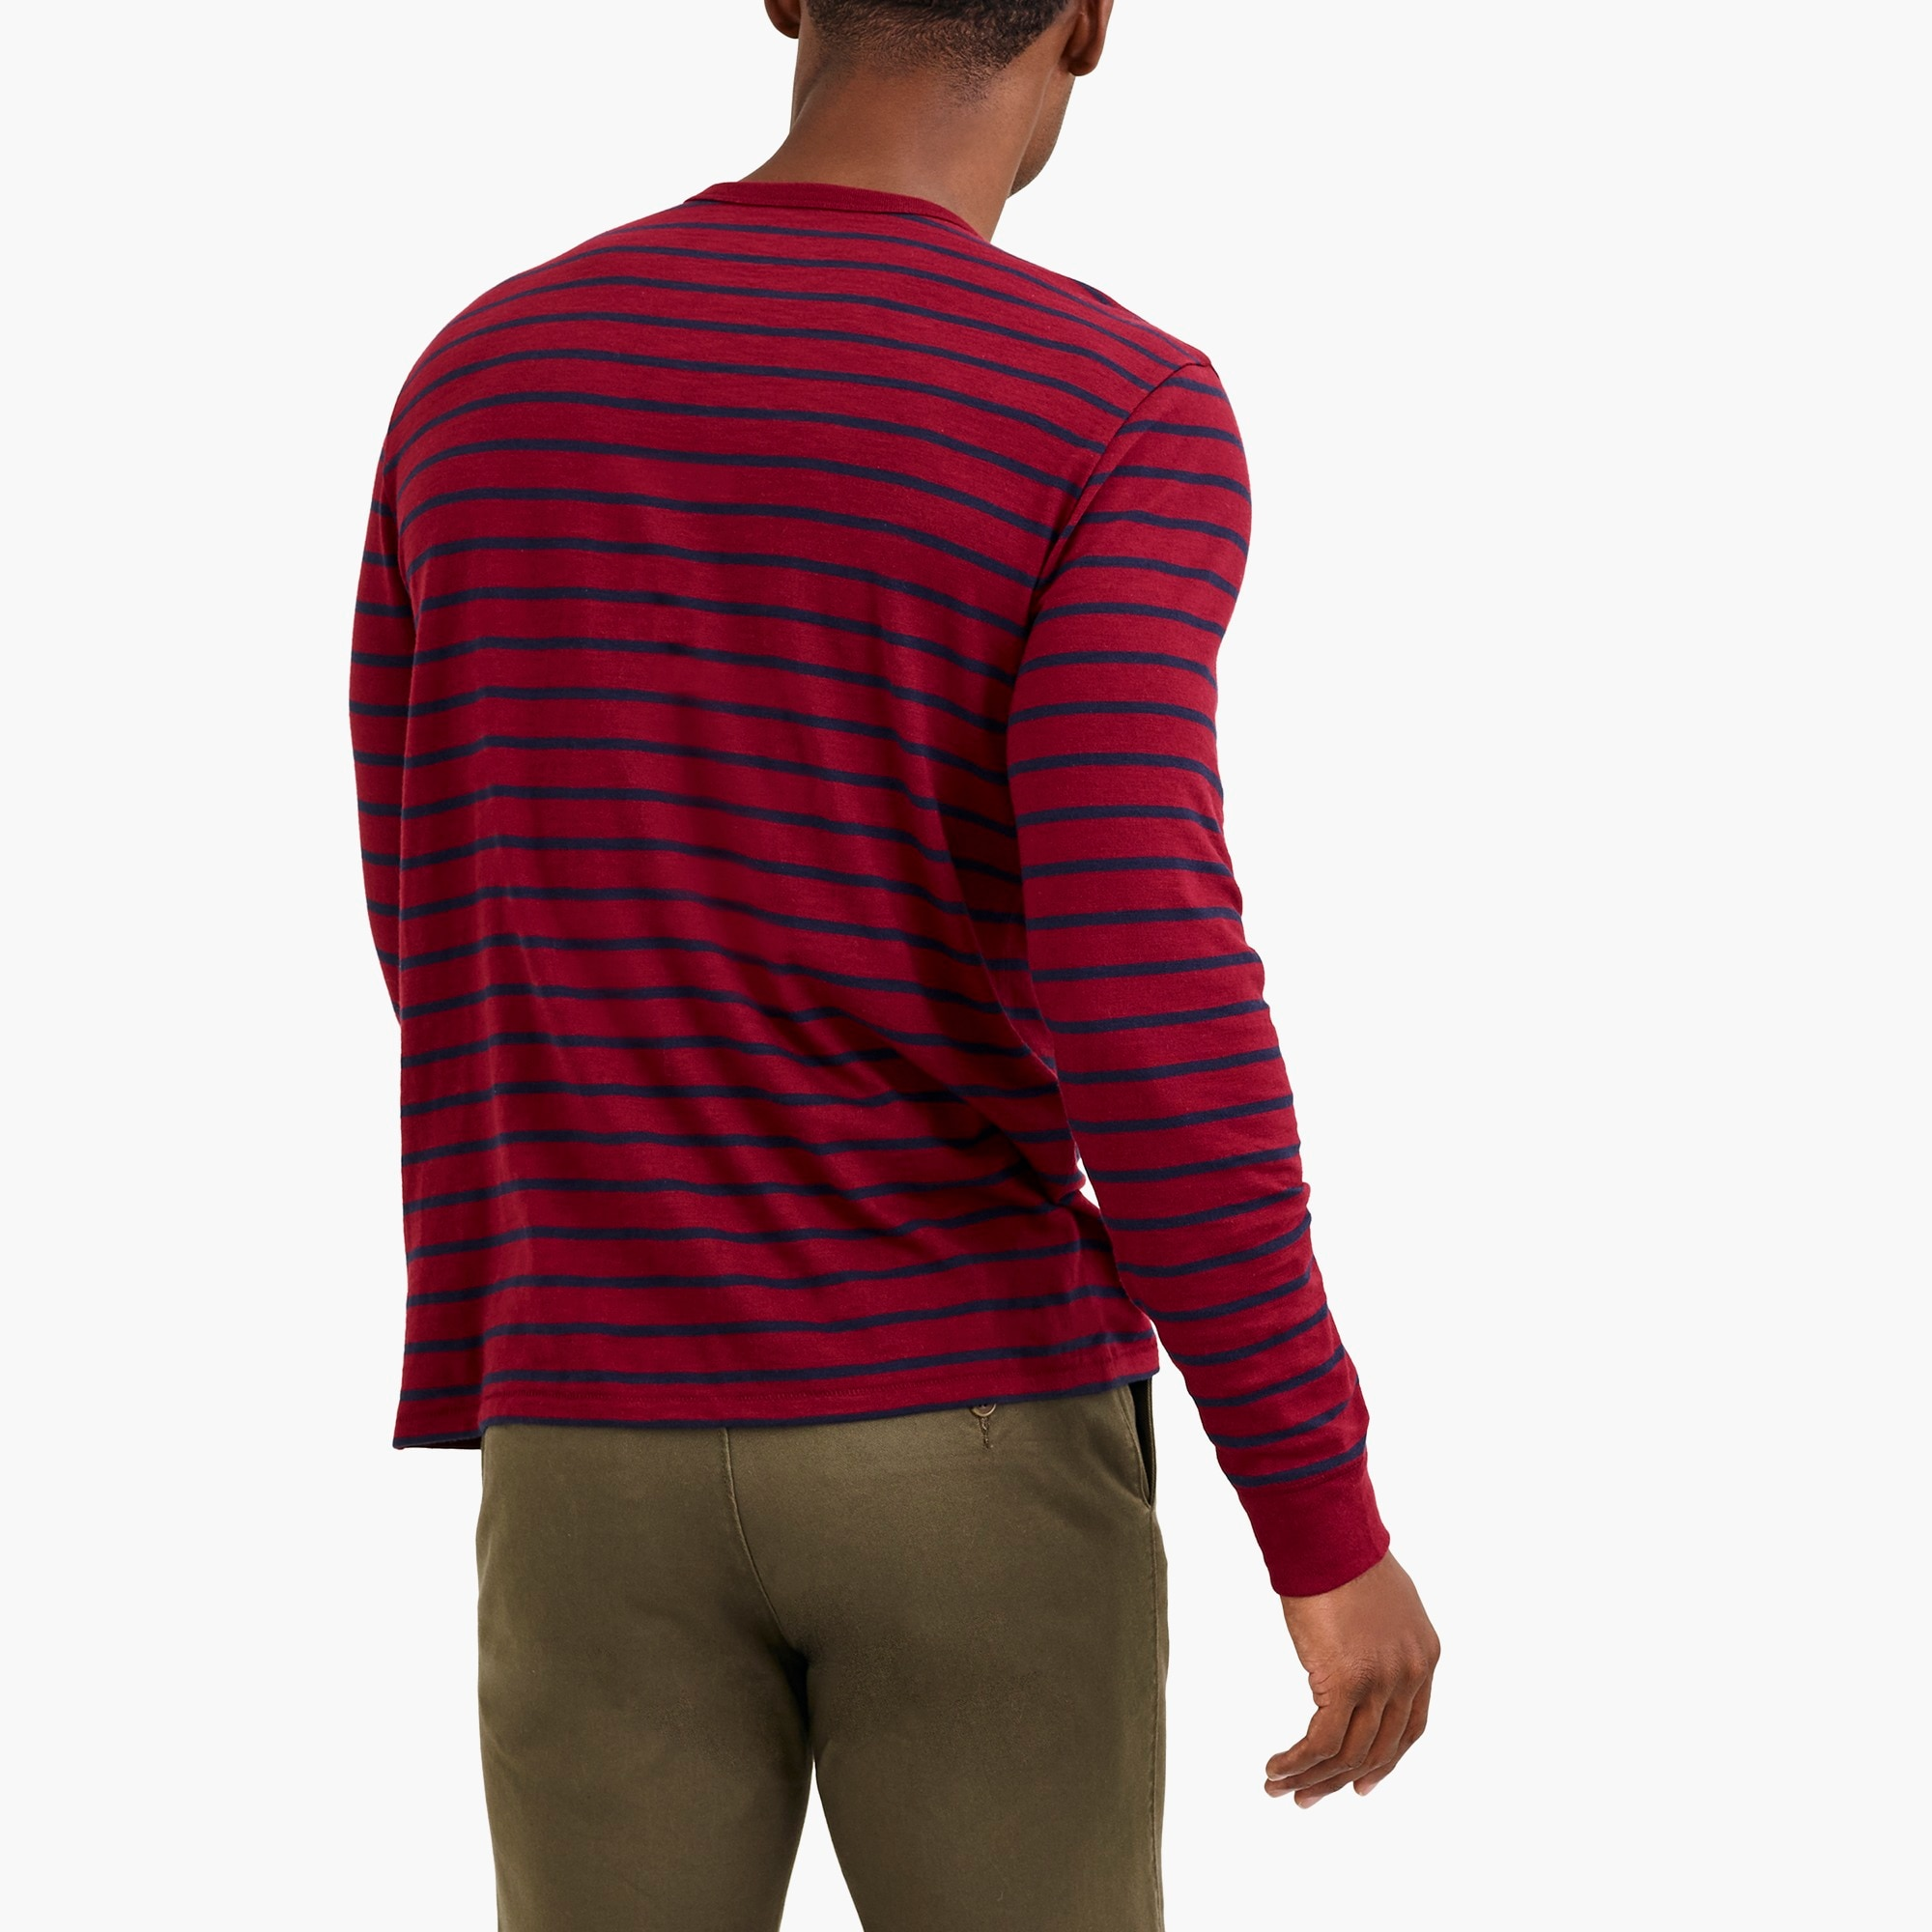 Image 3 for Long-sleeve deck-striped textured cotton T-shirt